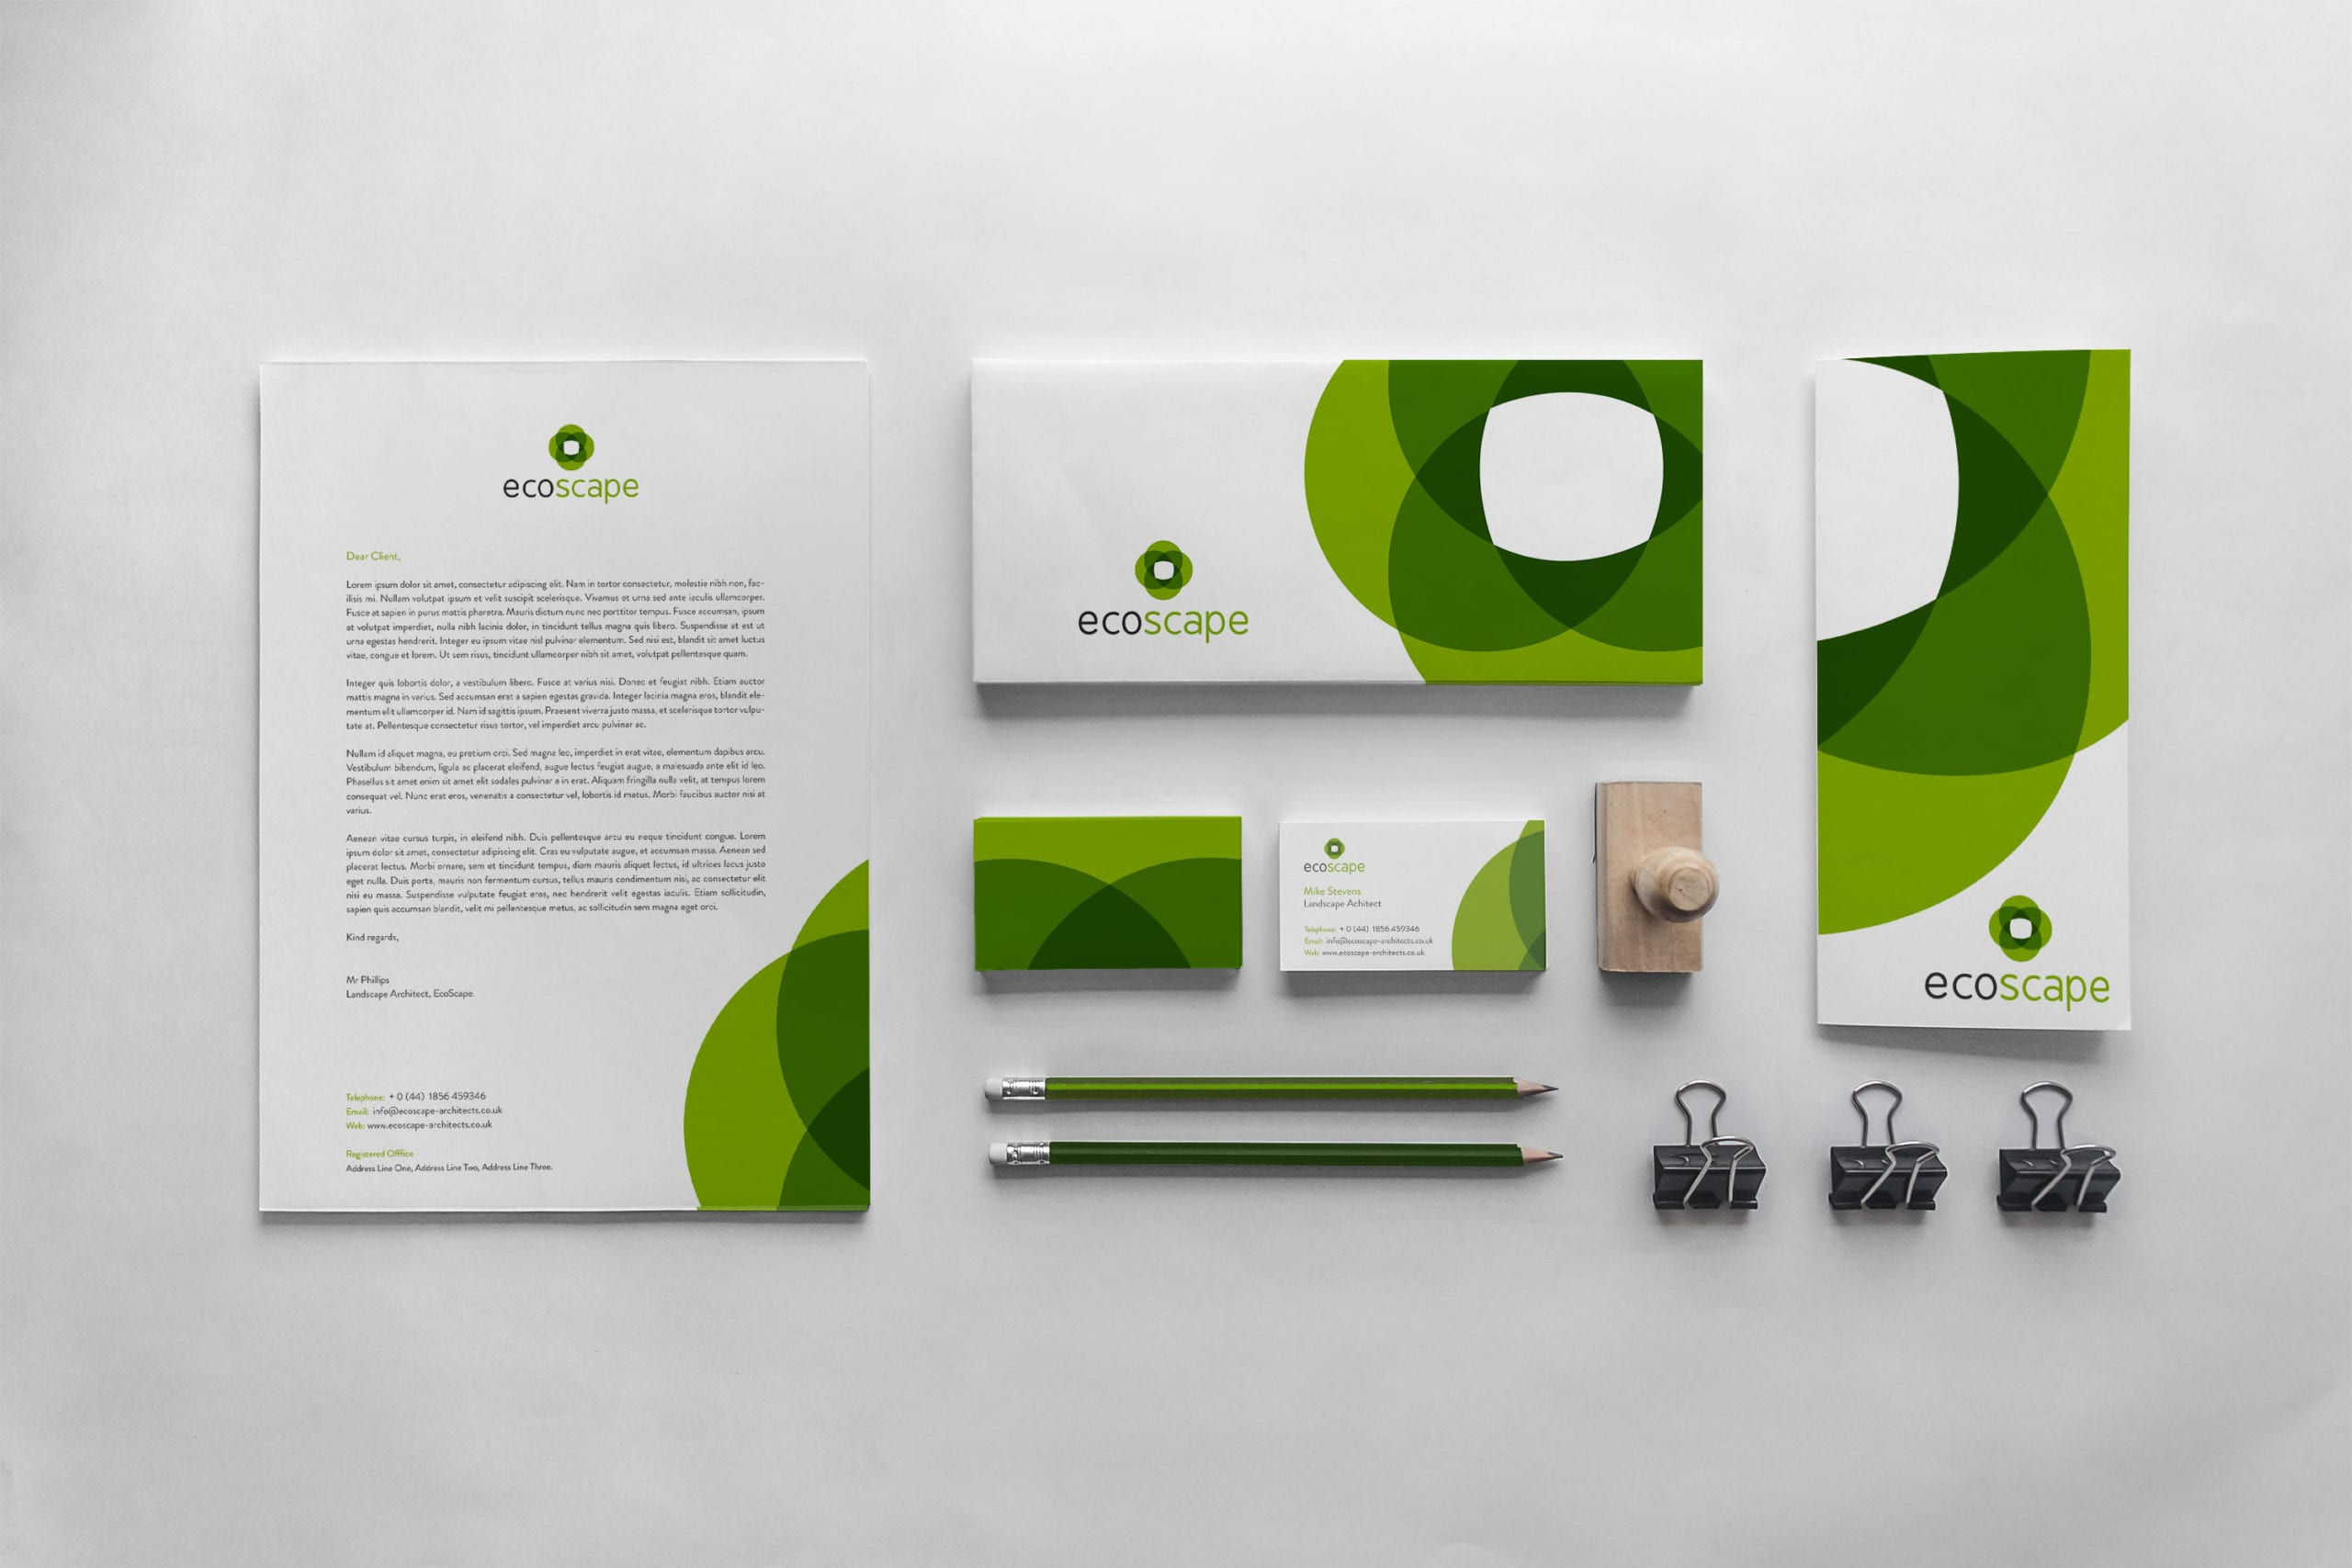 Product design agency new york home design ideas for Top 10 product design companies